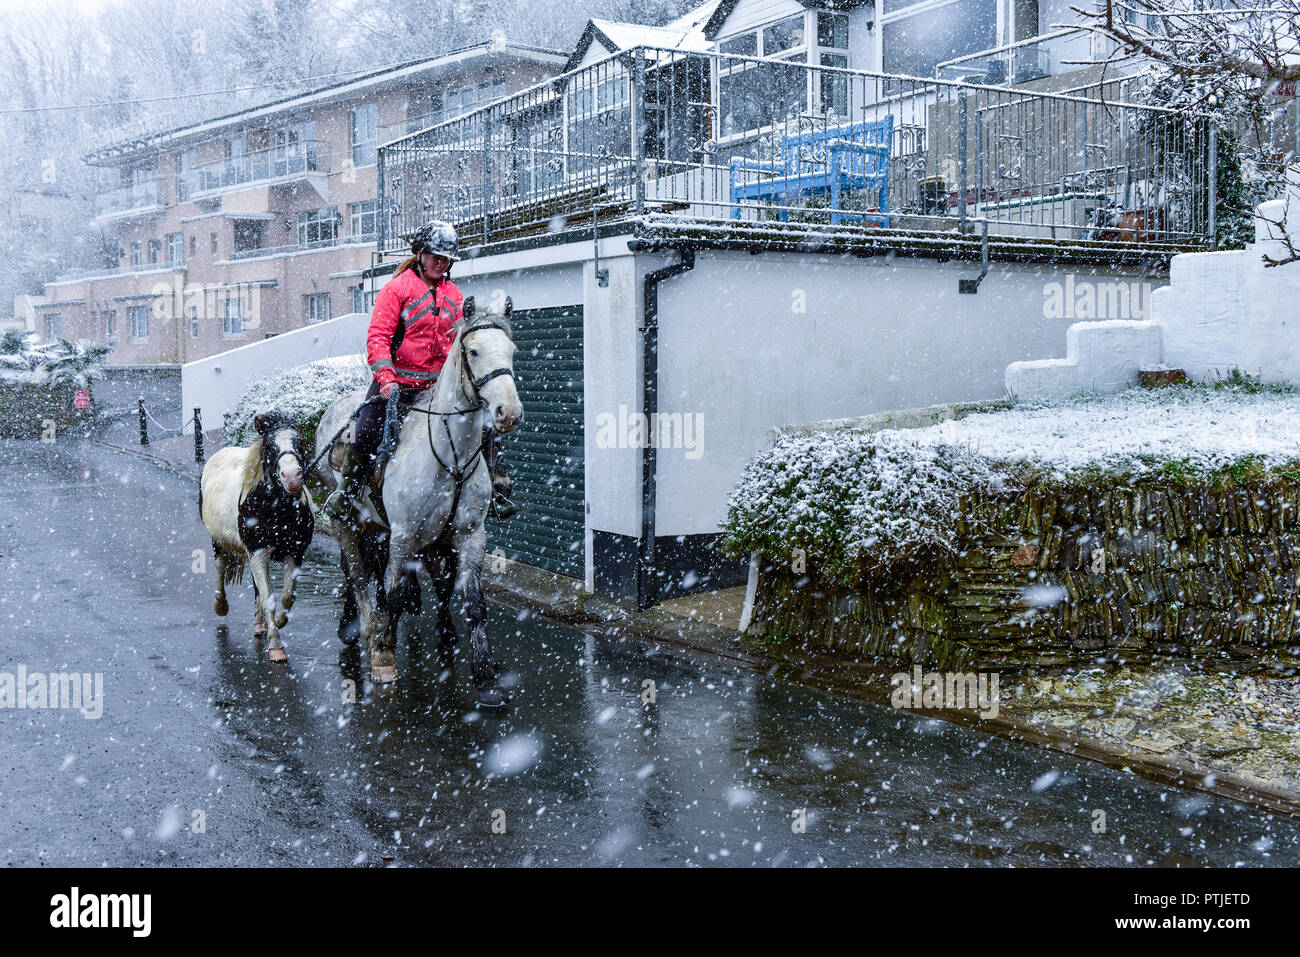 A horse rider riding her horse through heavy snowfall at Newquay in Cornwall. - Stock Image